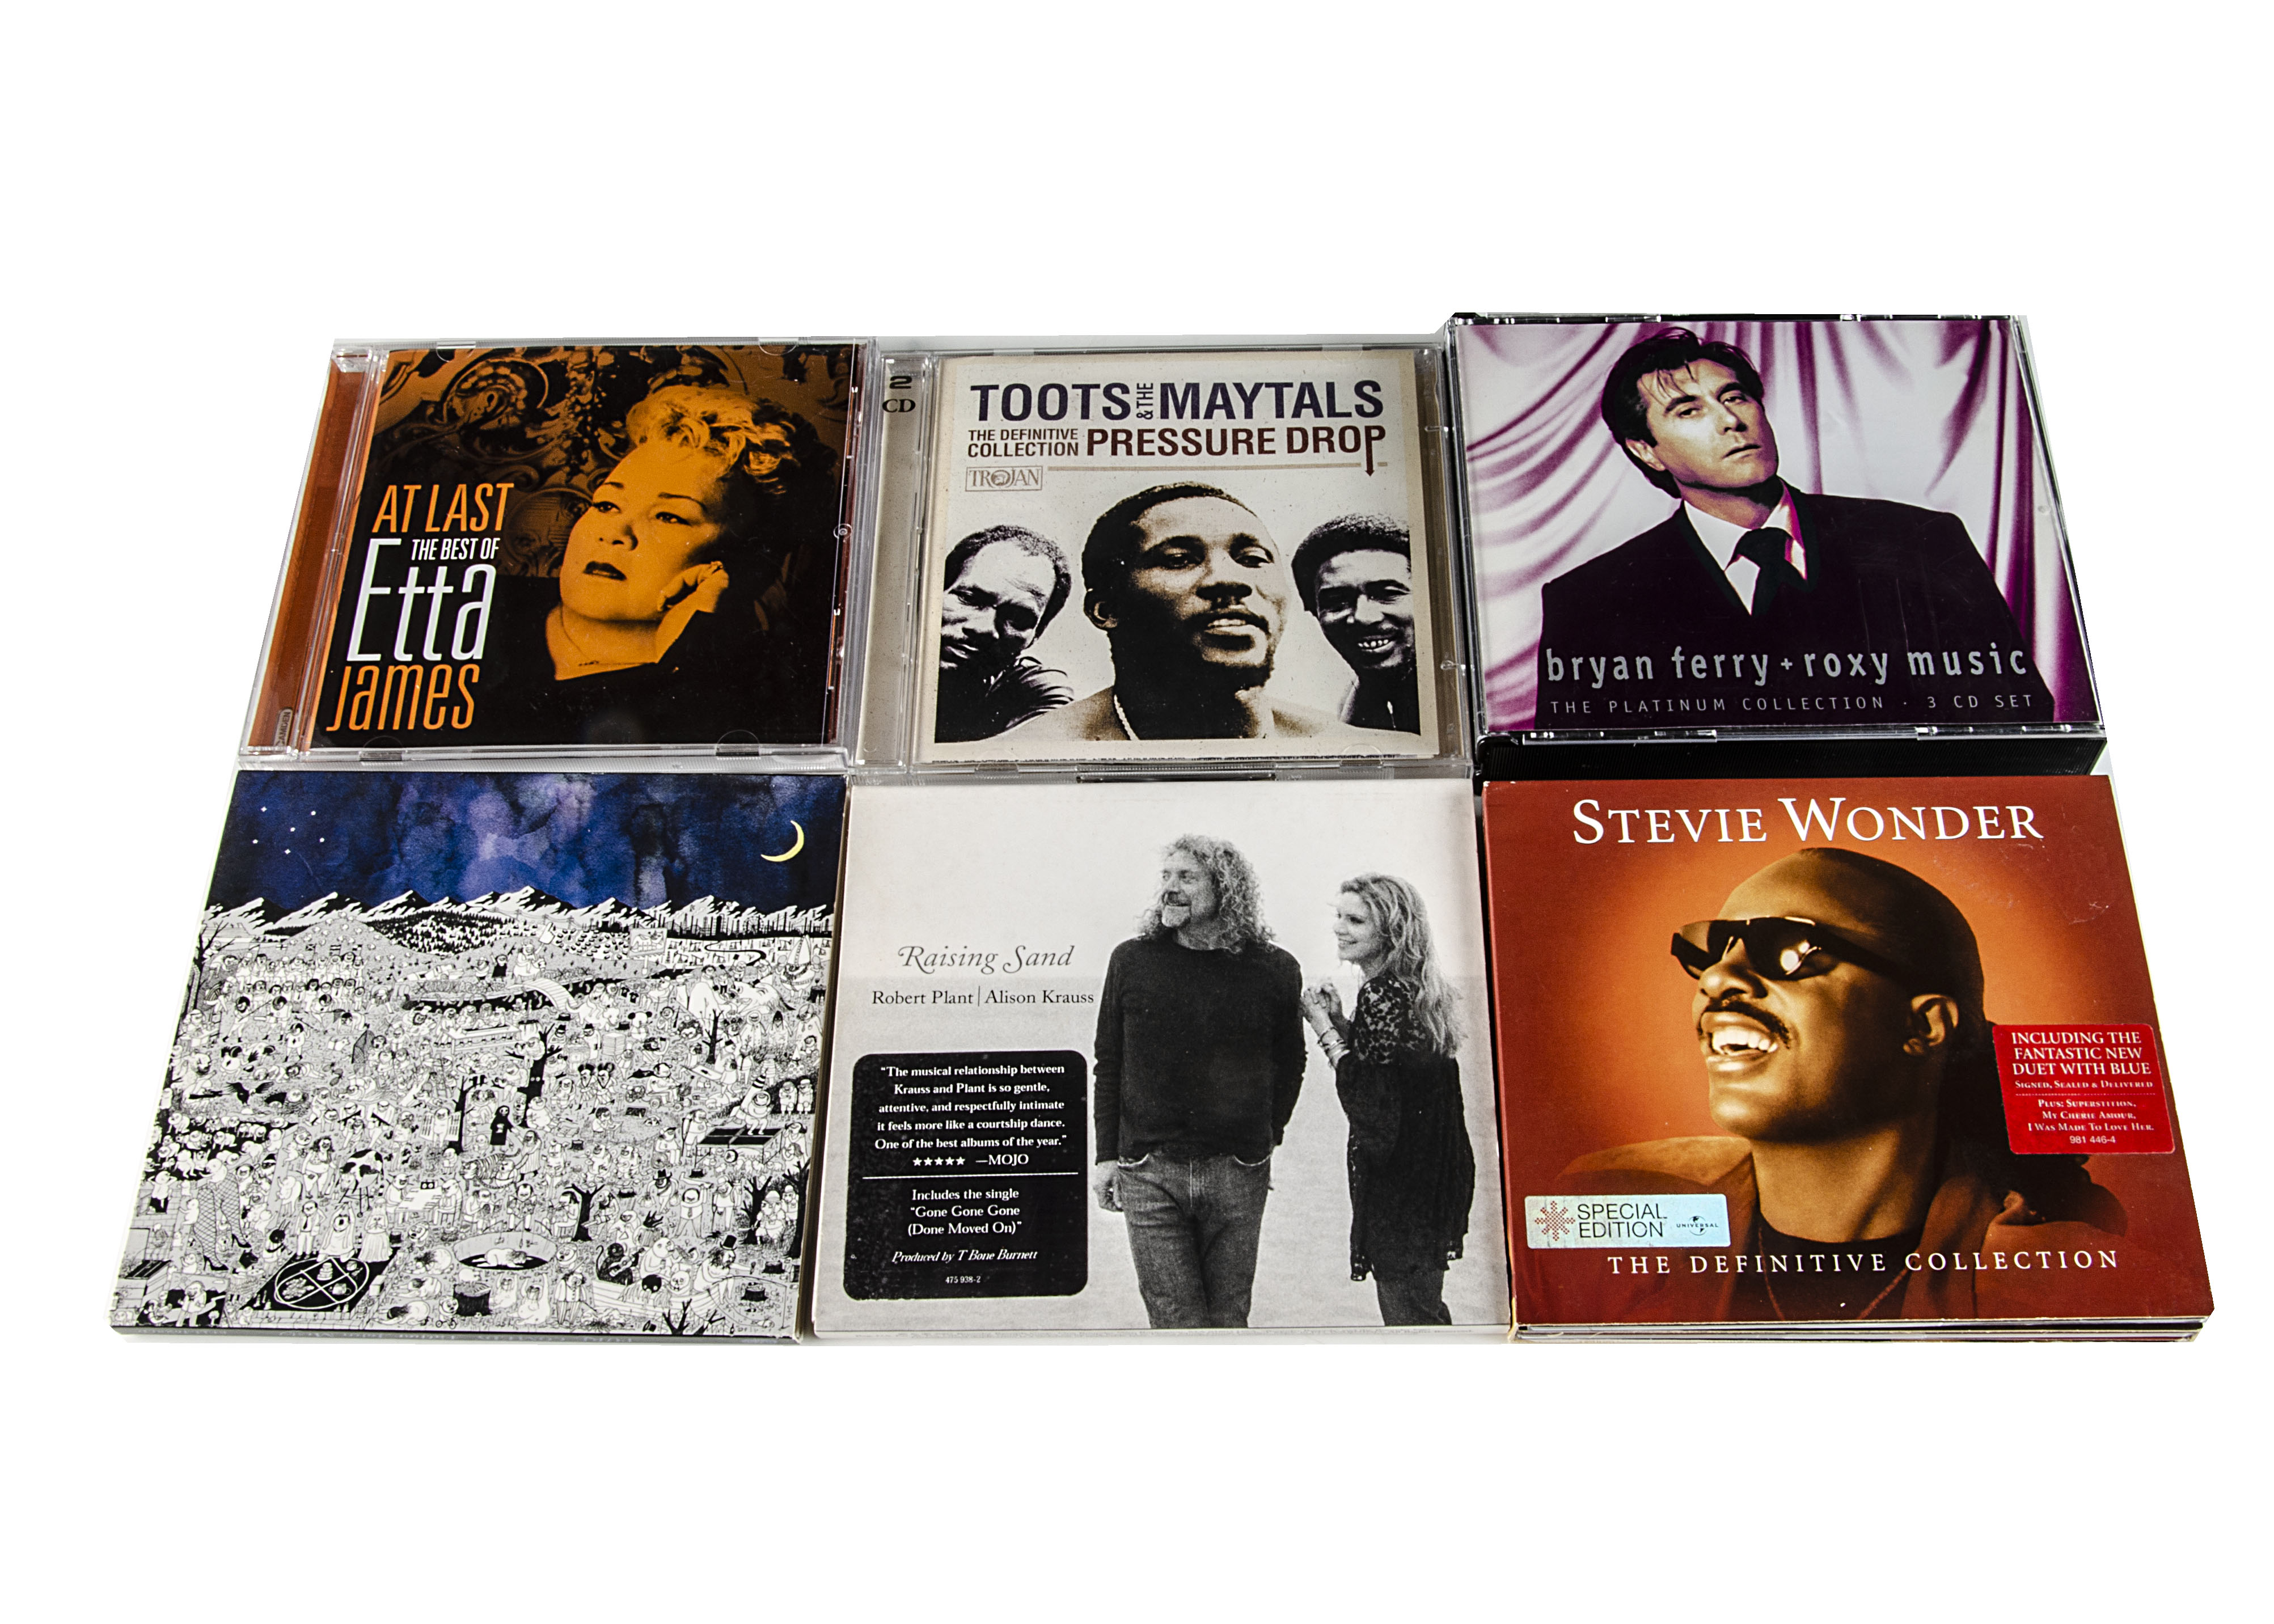 CDs, approximately three hundred CDs of various genres with artists including Stevie Wonder, Eva